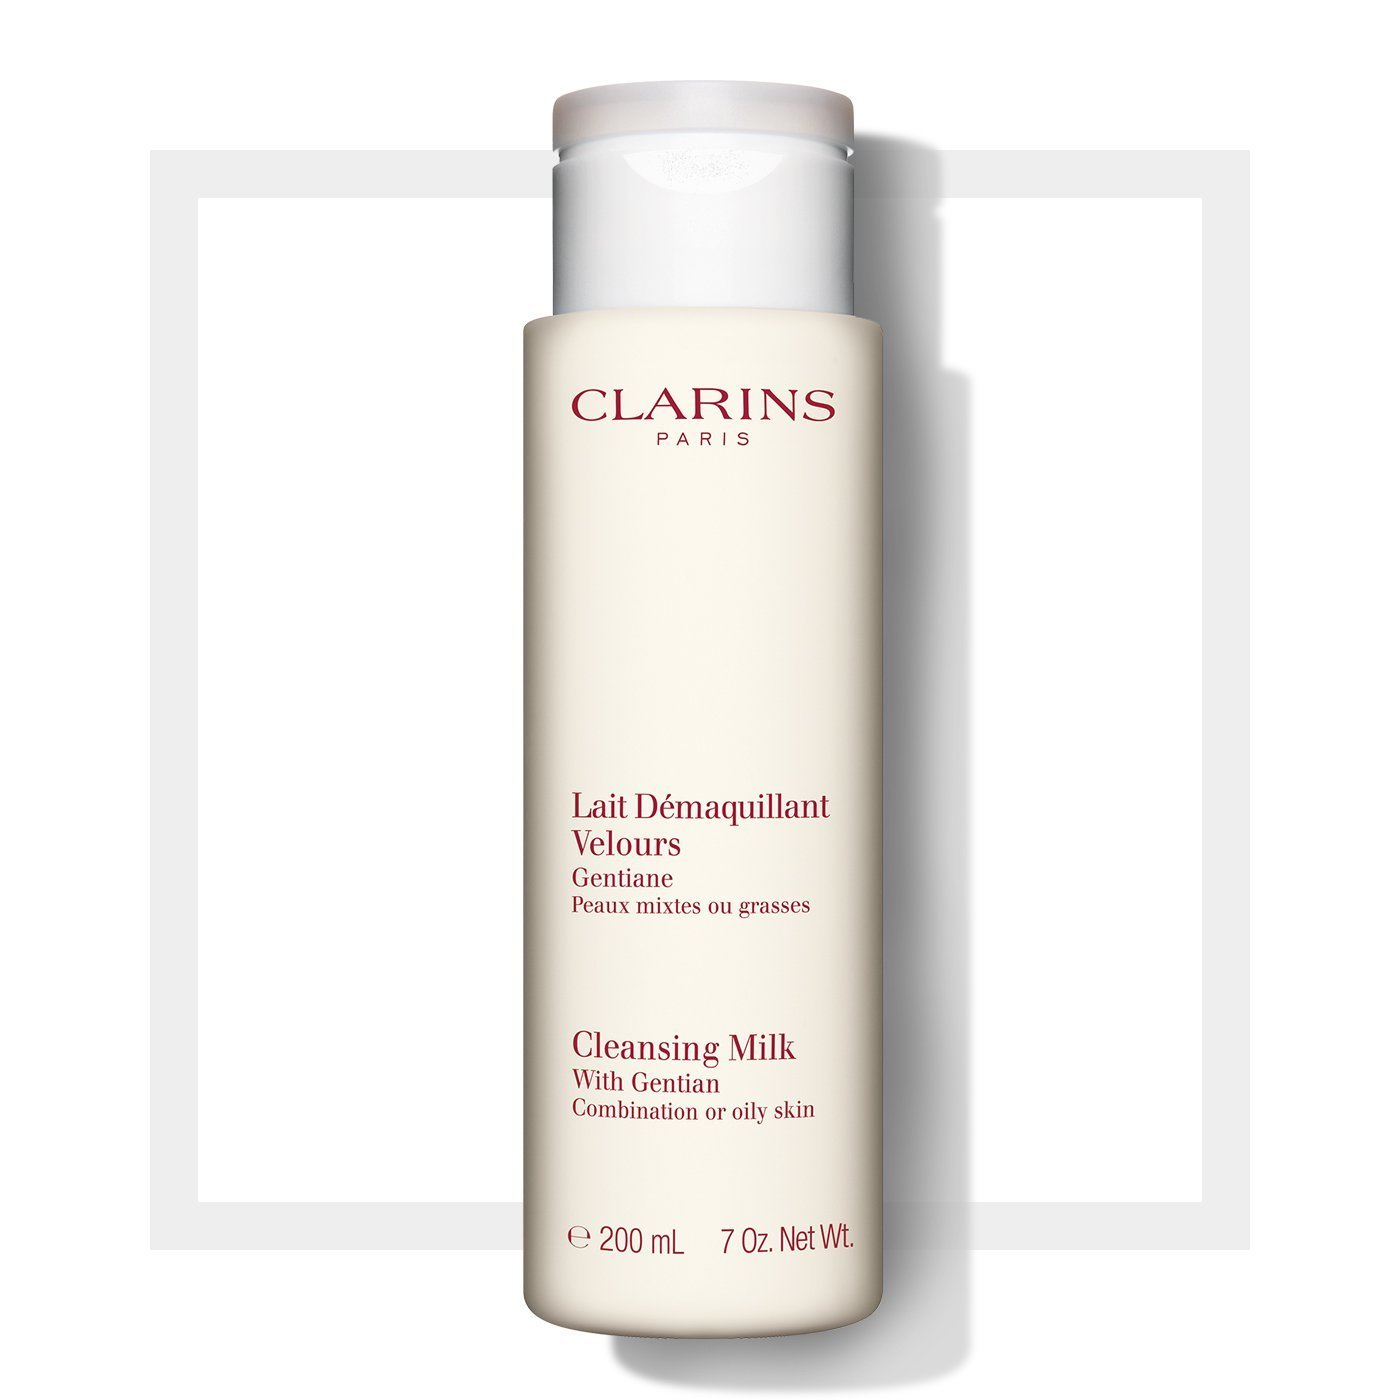 Clarins Cleansers and Toners Cleansing Milk with Gentian - Combination/Oily Skin 400ml 00038